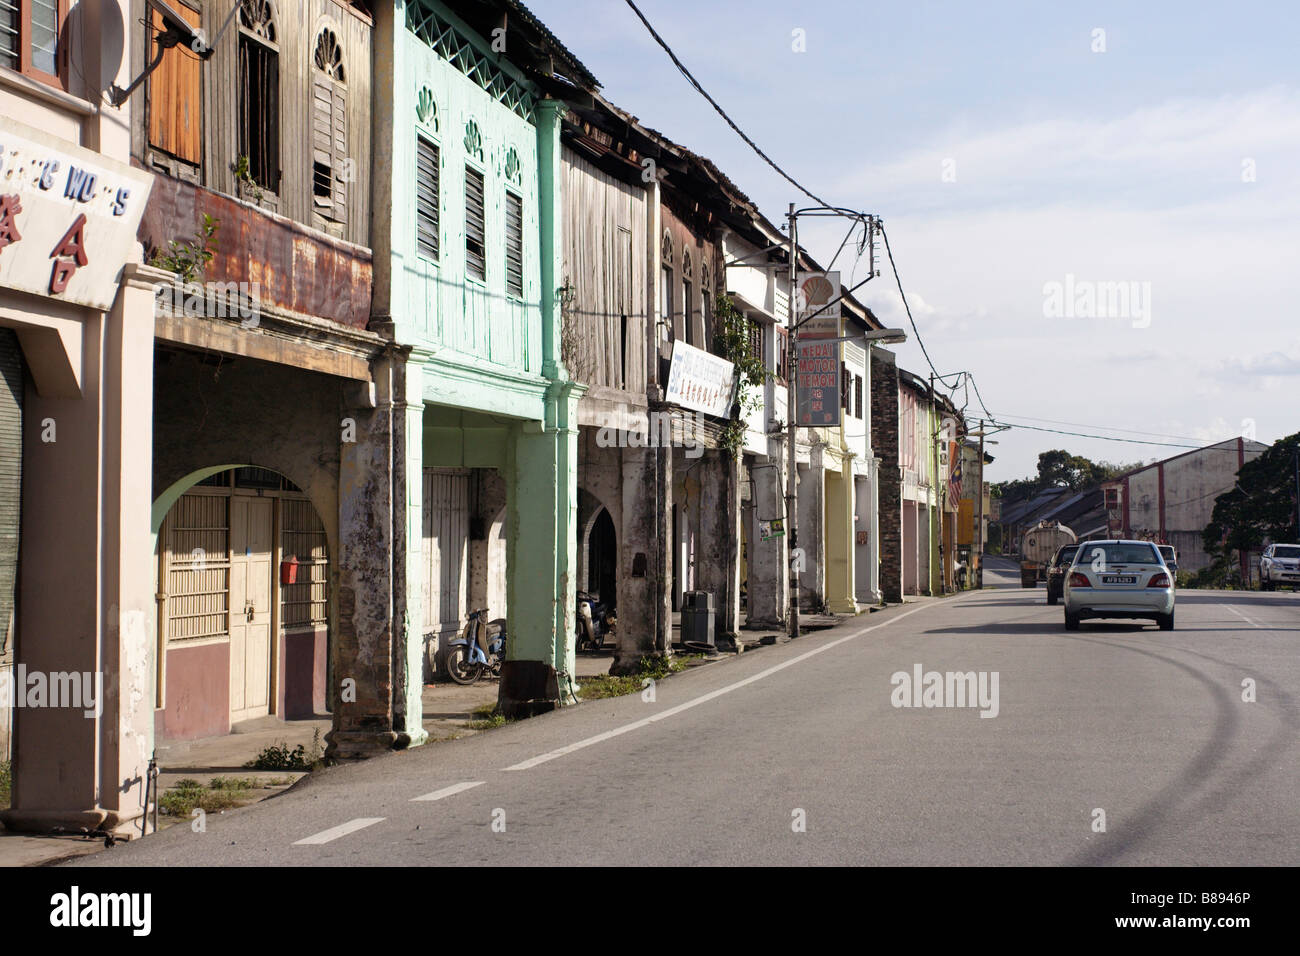 Old shophouses along country road in West Malaysia. - Stock Image